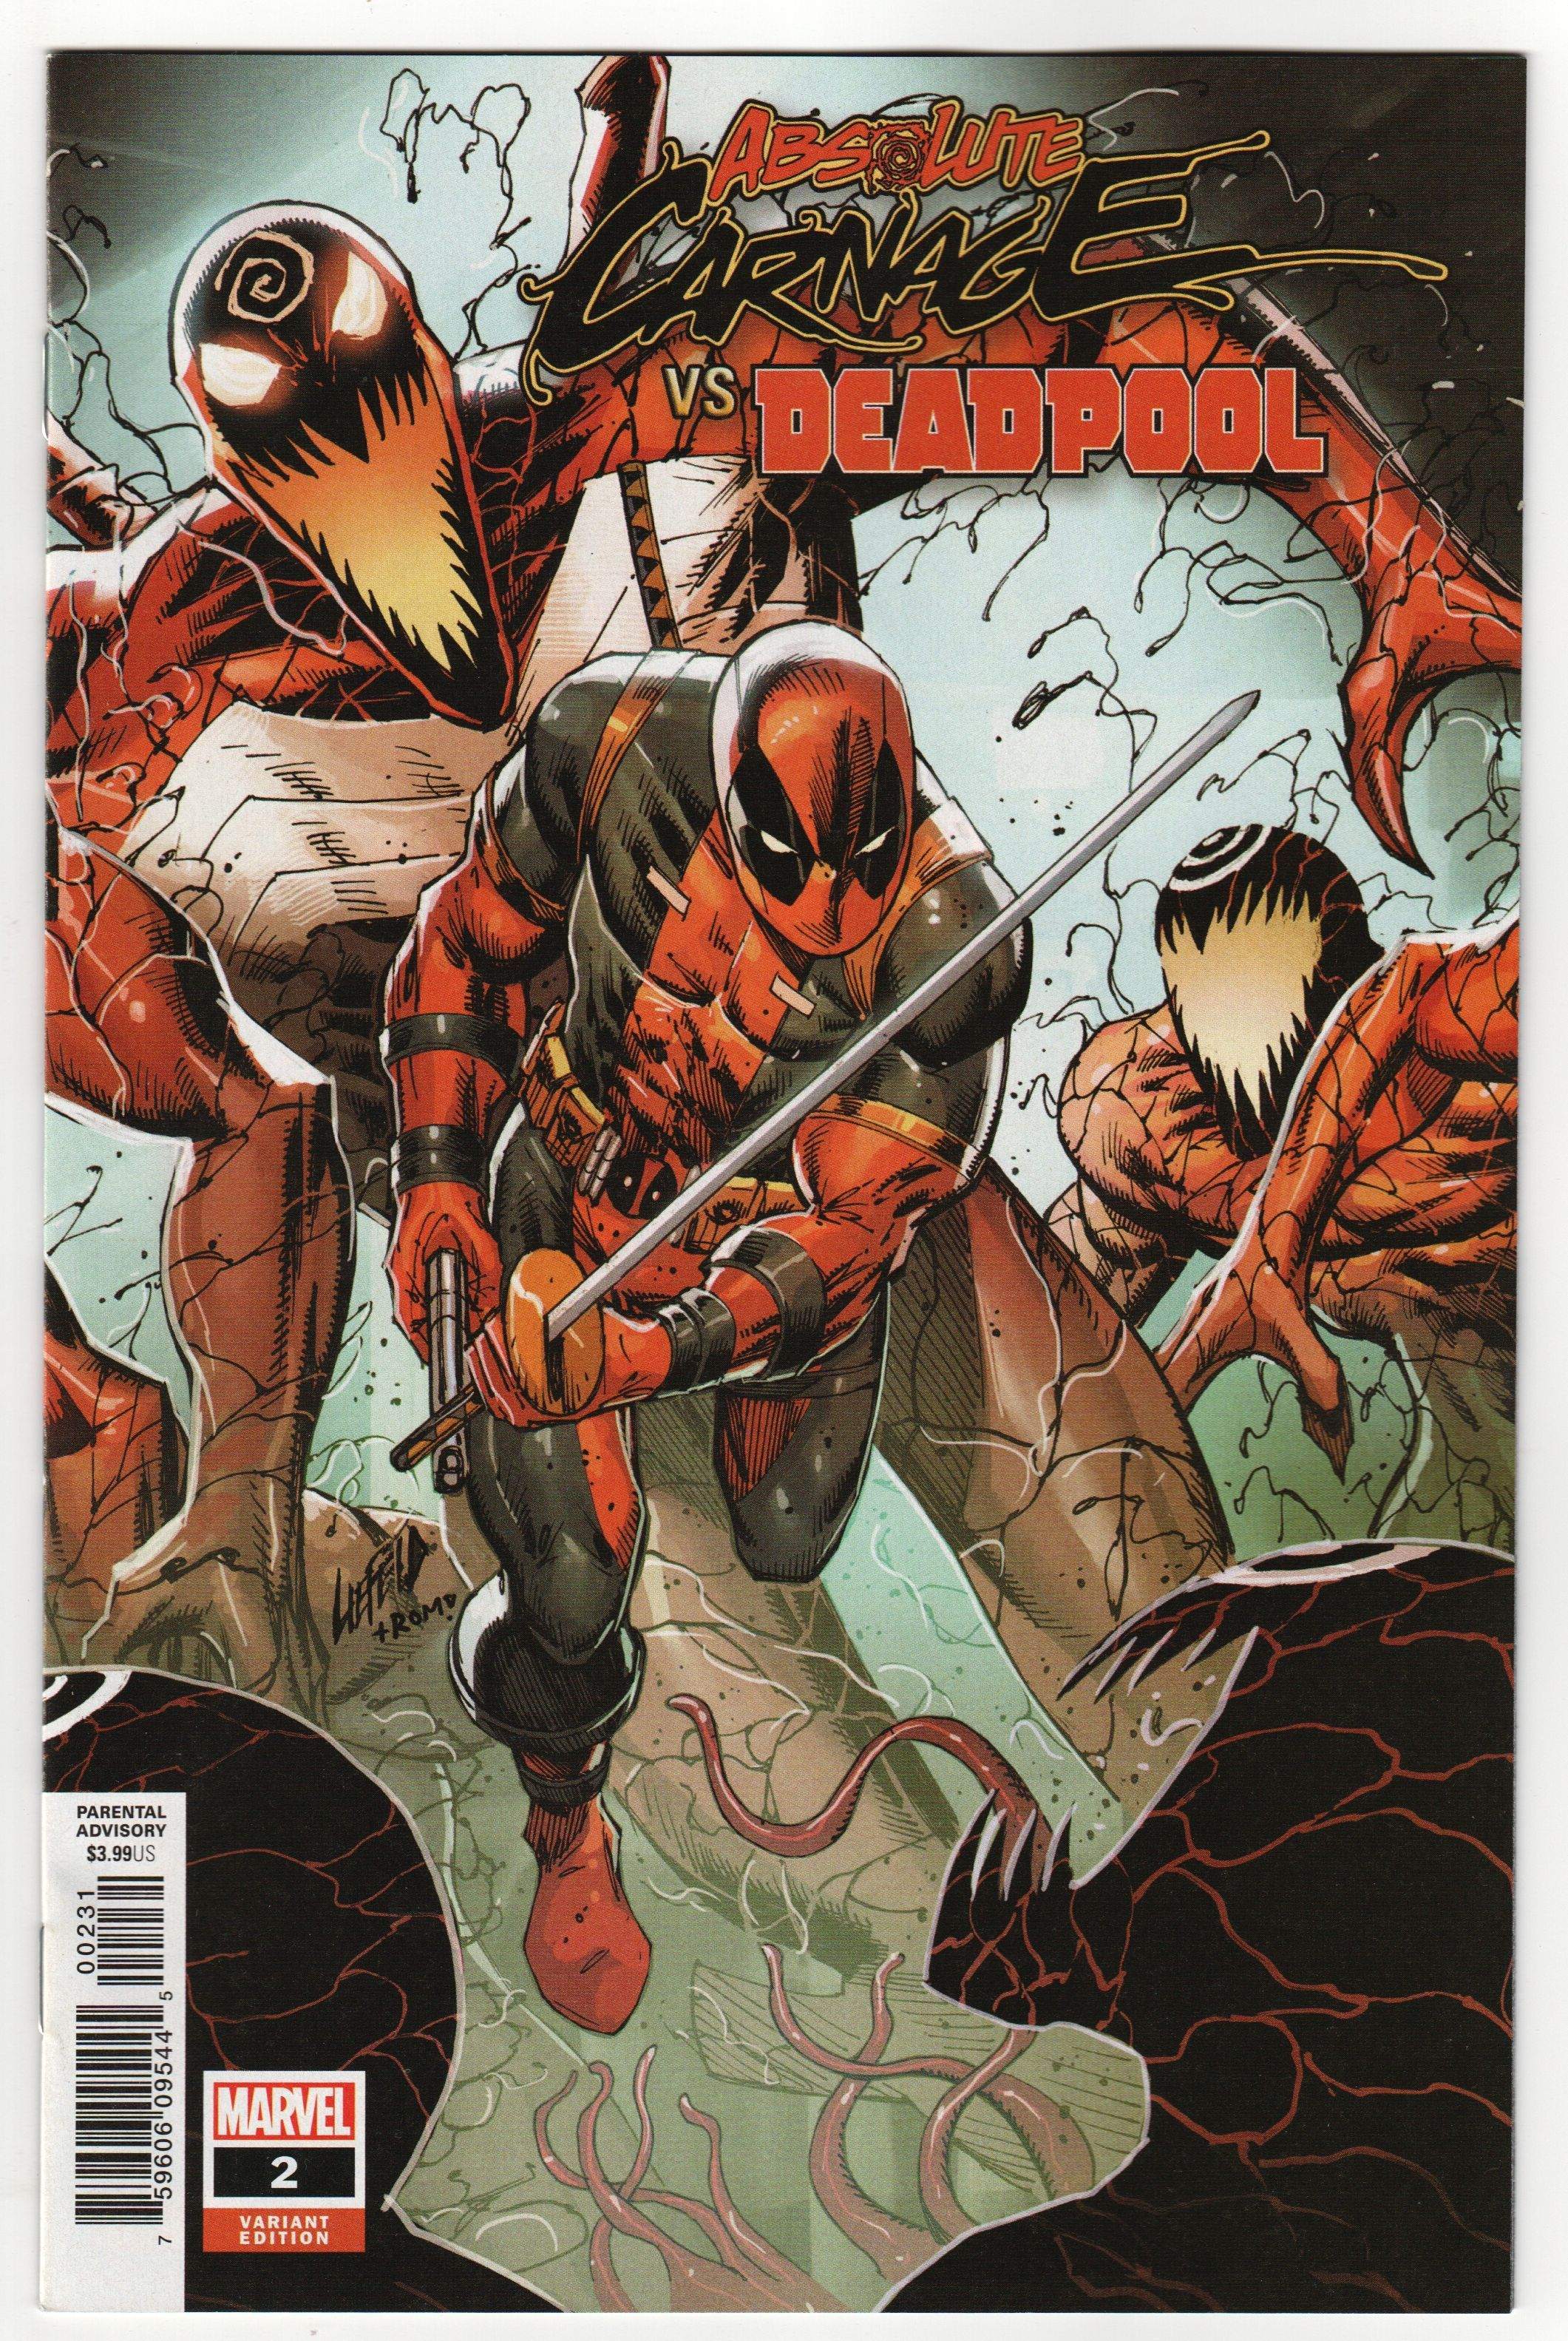 Marvel 2019 Liefeld Connecting Variant Absolute Carnage Vs Deadpool #1